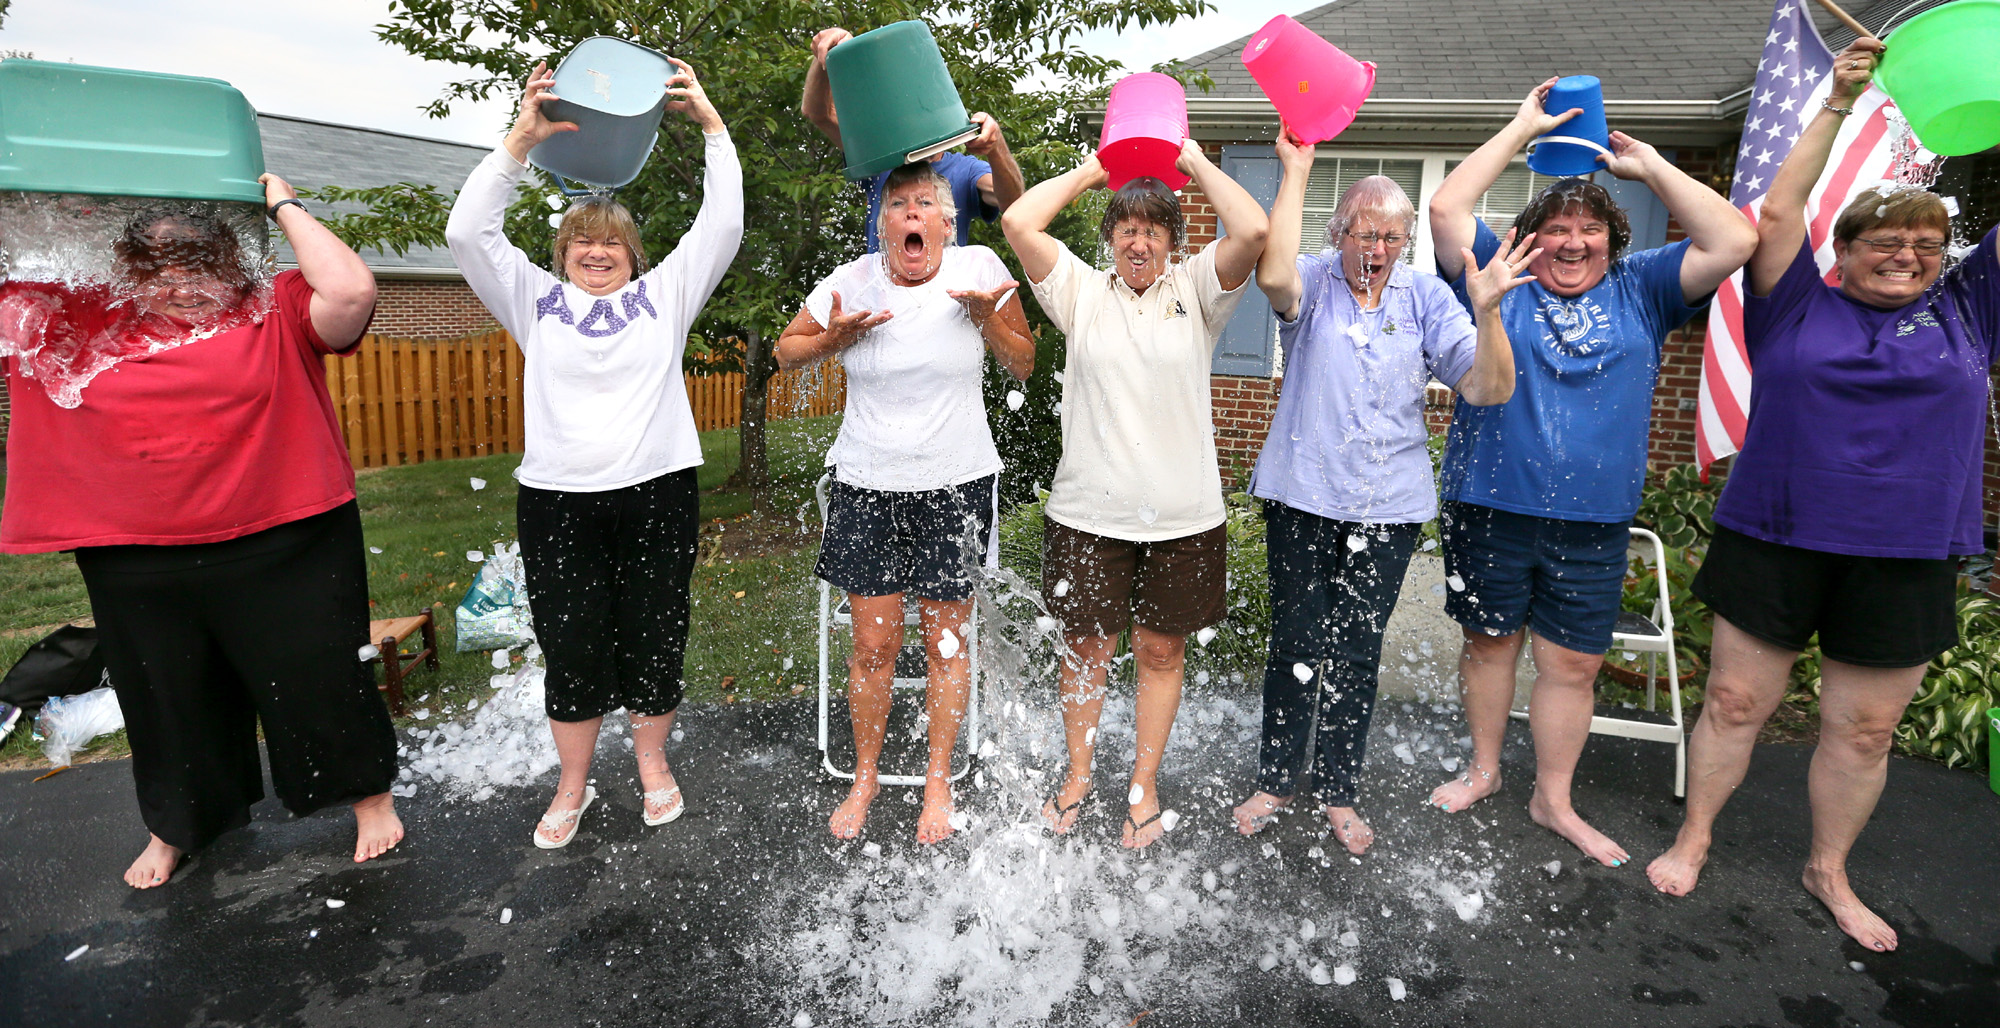 Has The Ice Bucket Challenge Made a Difference?